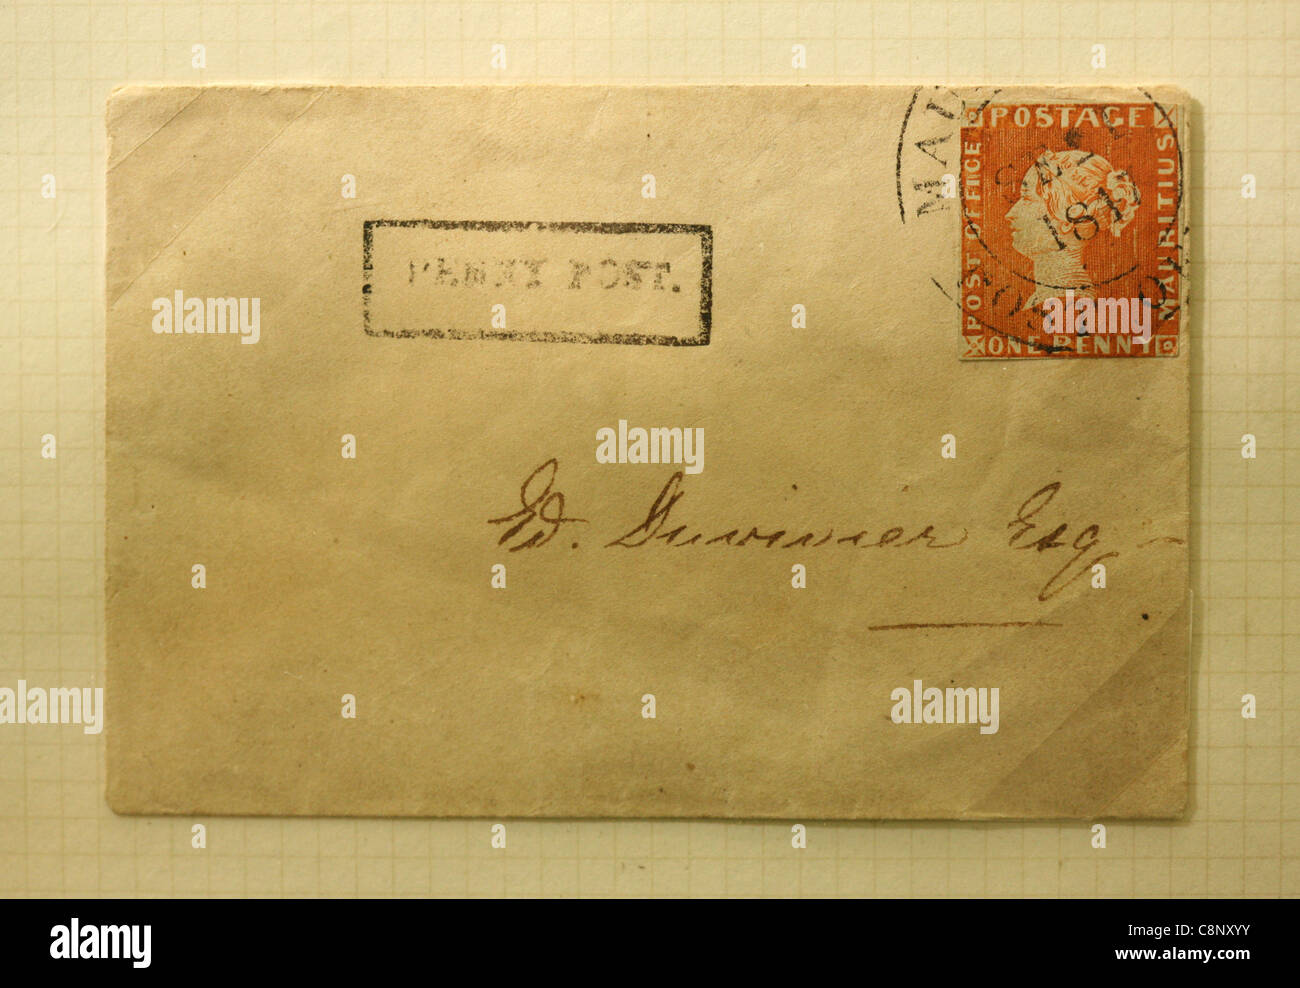 The Mauritius 'Post Office' one penny red stamp on the envelop. One of the rarest postage stamps in the world. - Stock Image